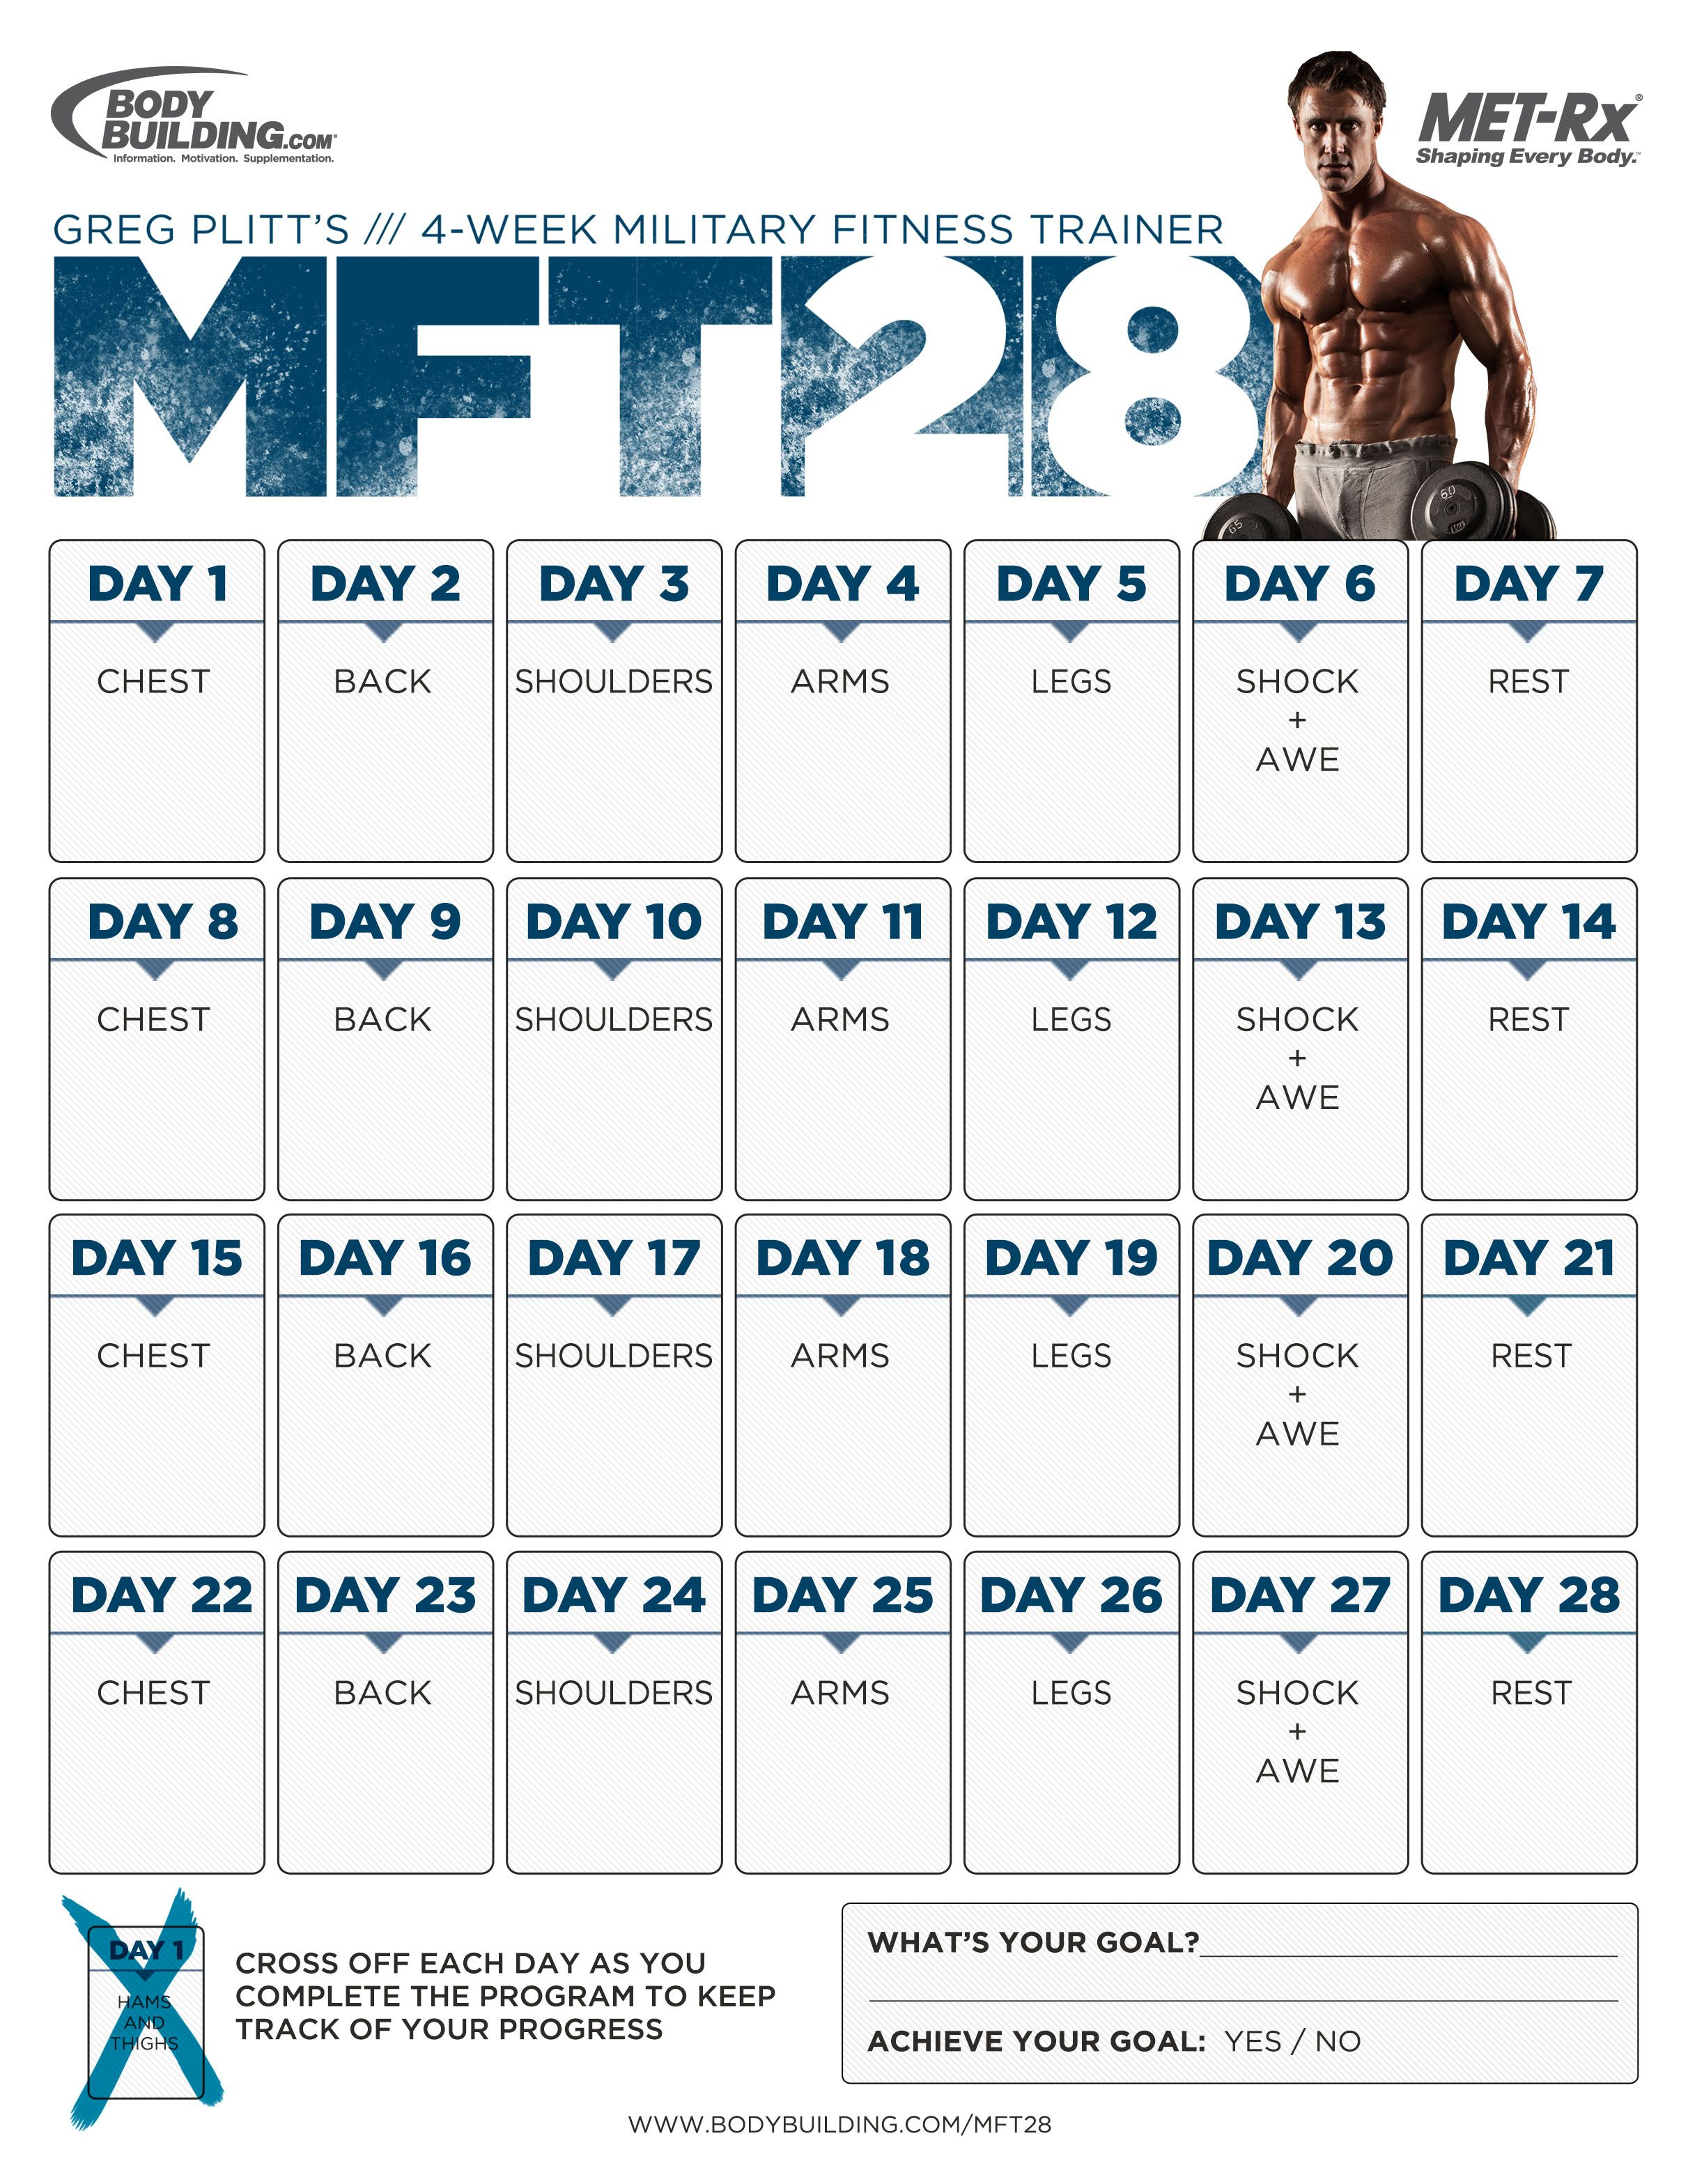 MFT28: Greg Plitt's 4-Week Military Fitness Trainer By MET-Rx ...